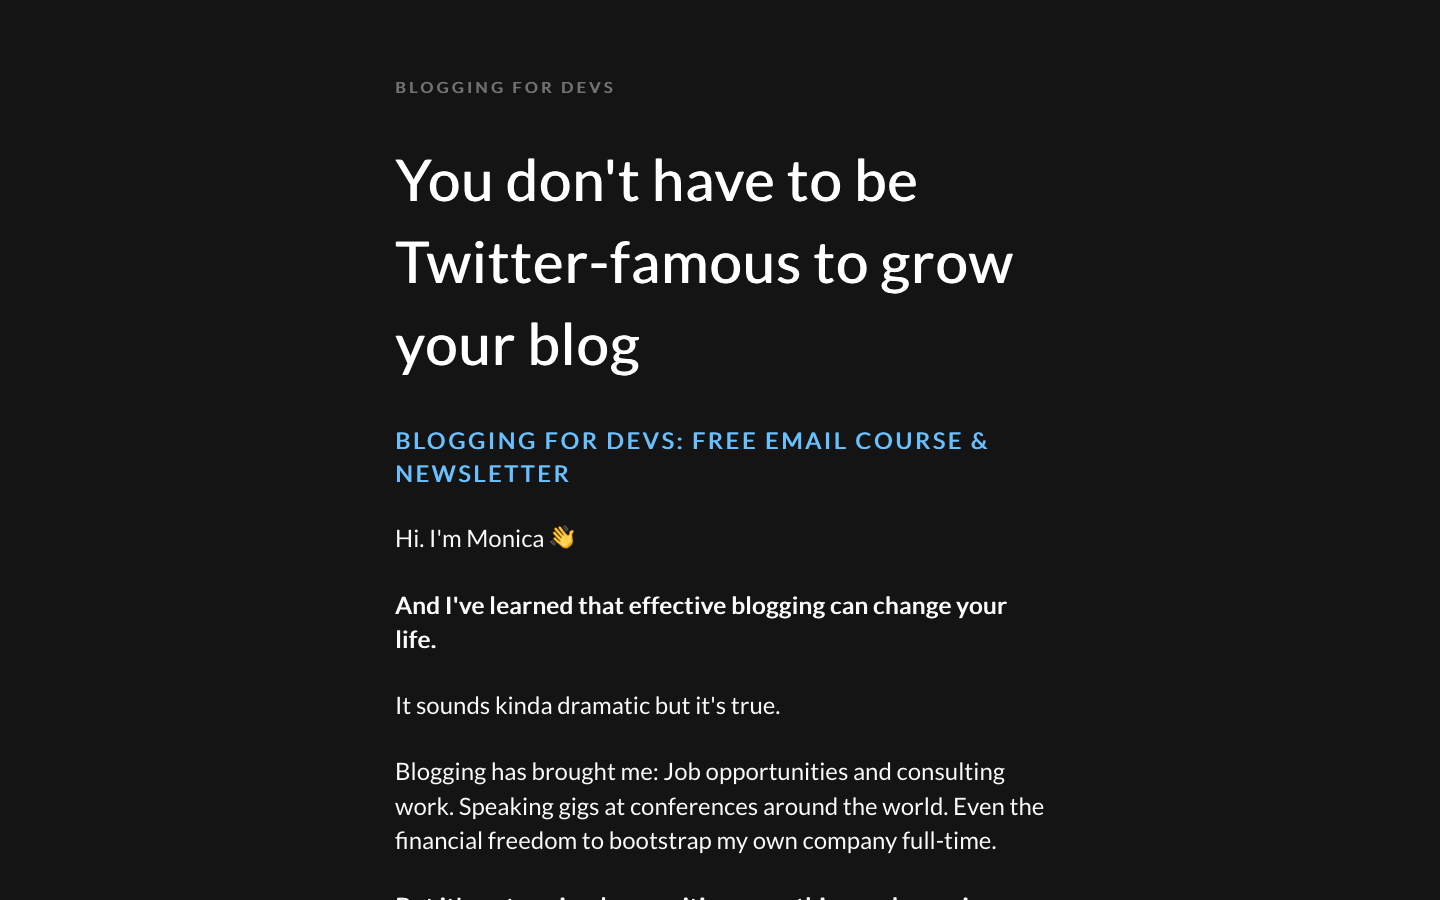 Blogging for Devs homepage